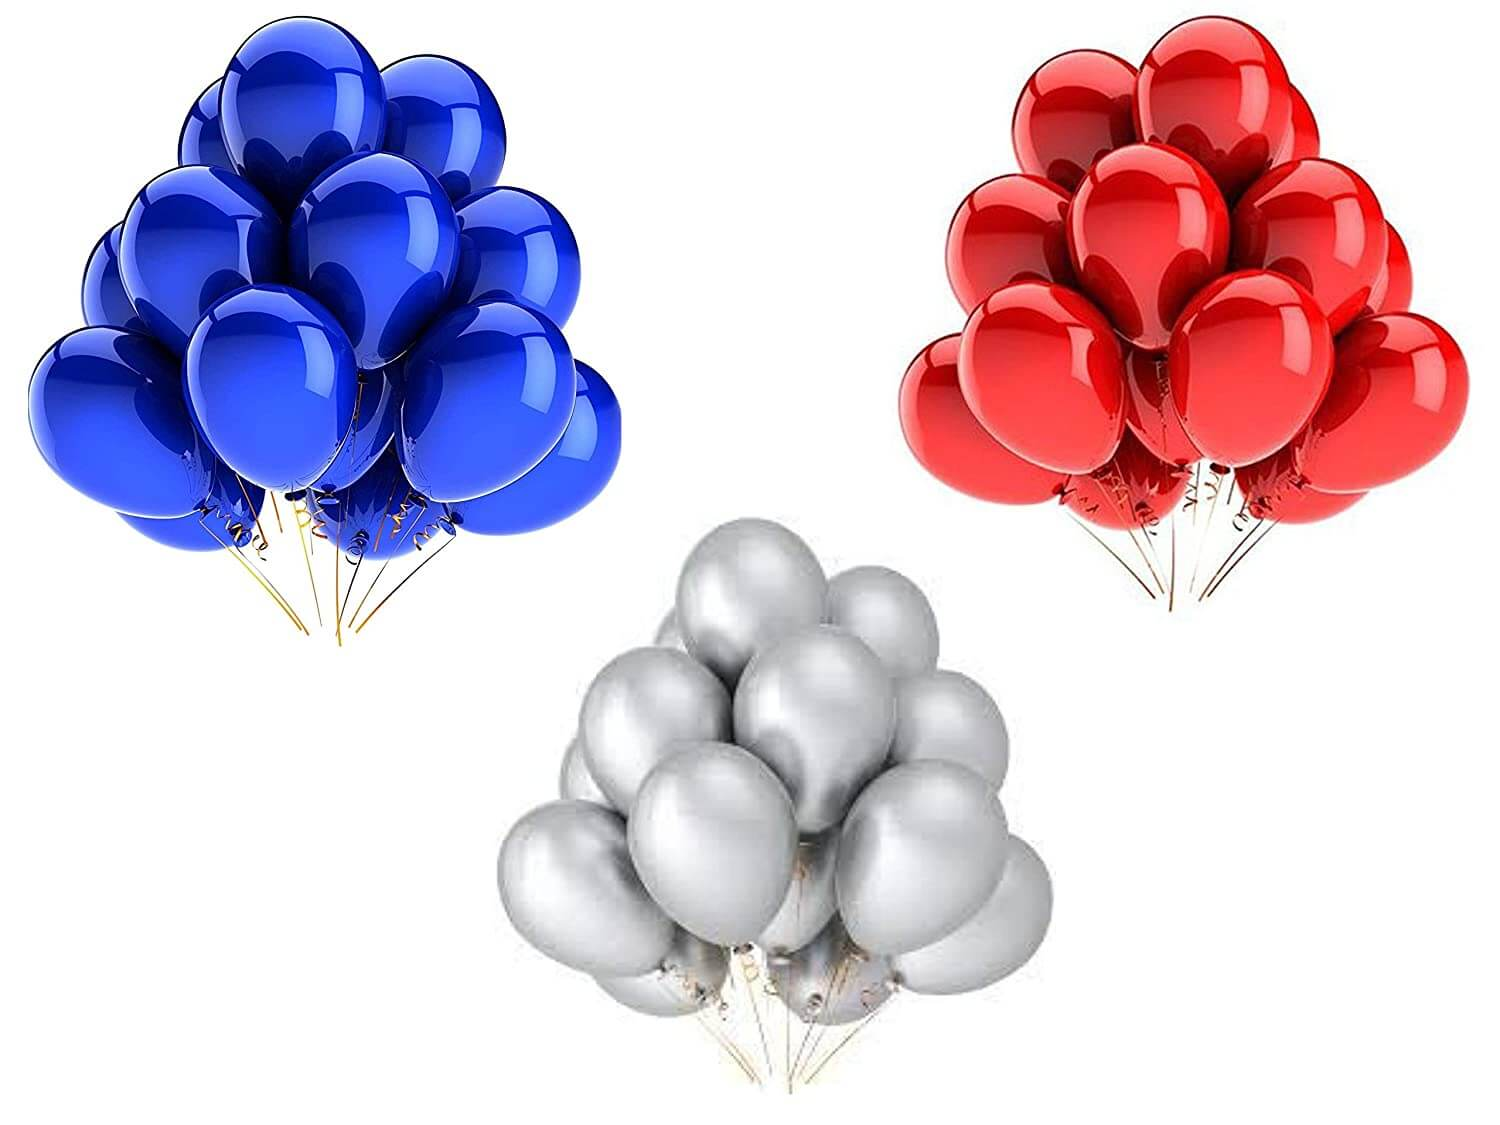 Metallic Balloons Pack Of 50 - Party Decoration Balloons | All About Baking